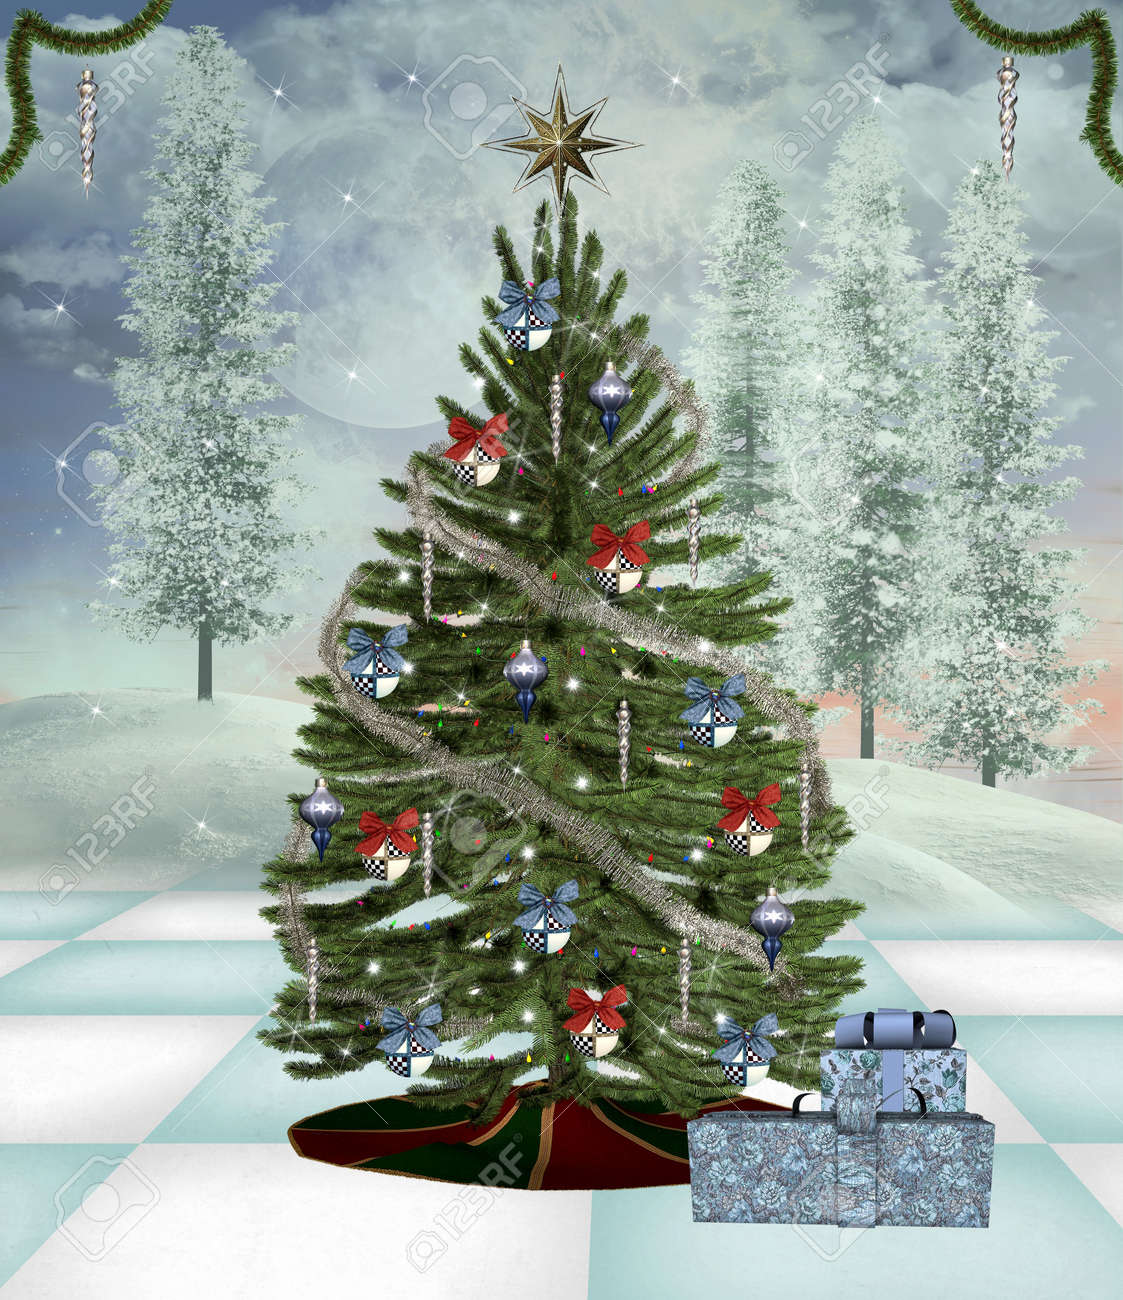 Wonderful Christmas Tree Scenery Part - 7: Christmas Tree In A Winter Scenery Stock Photo - 15602891